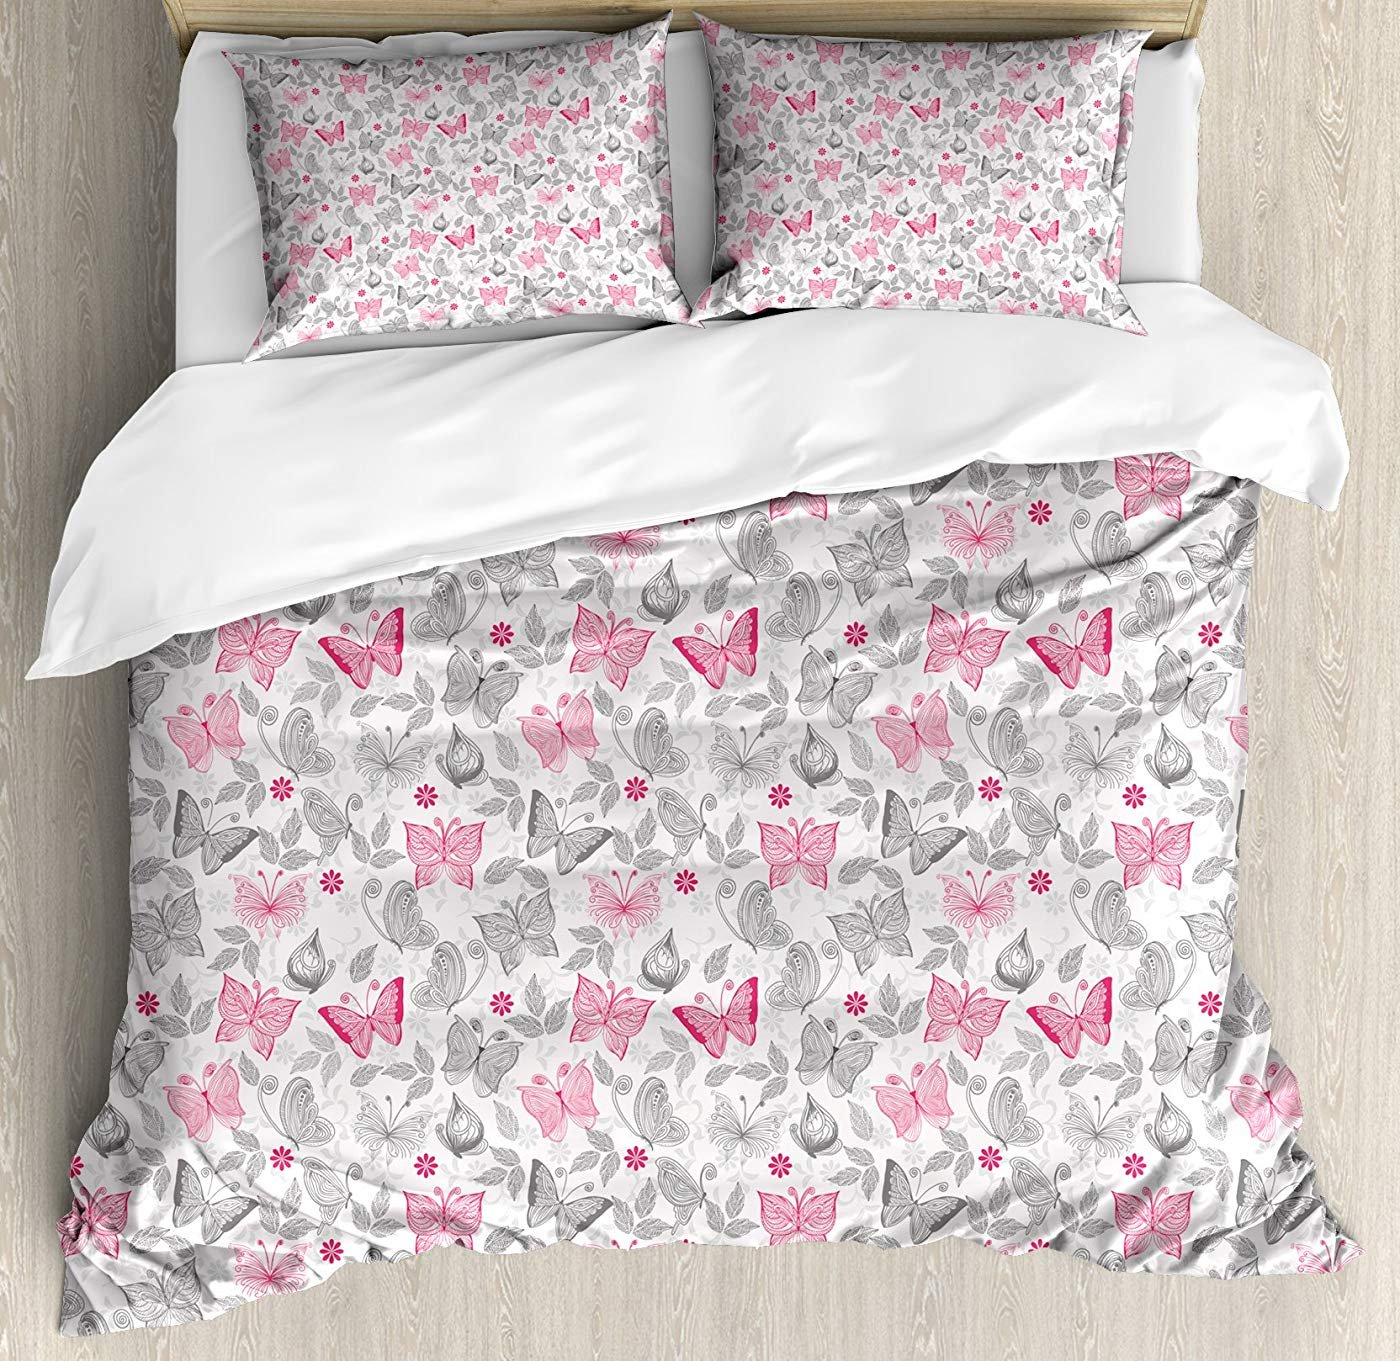 Multi 2 Twin Butterfly Duvet Cover Set Twin Size, Sketch Style Animals Leaves Abstract Nature Depiction Romantic Swirls Lines,Lightweight Microfiber Duvet Cover Sets, Grey Pink White